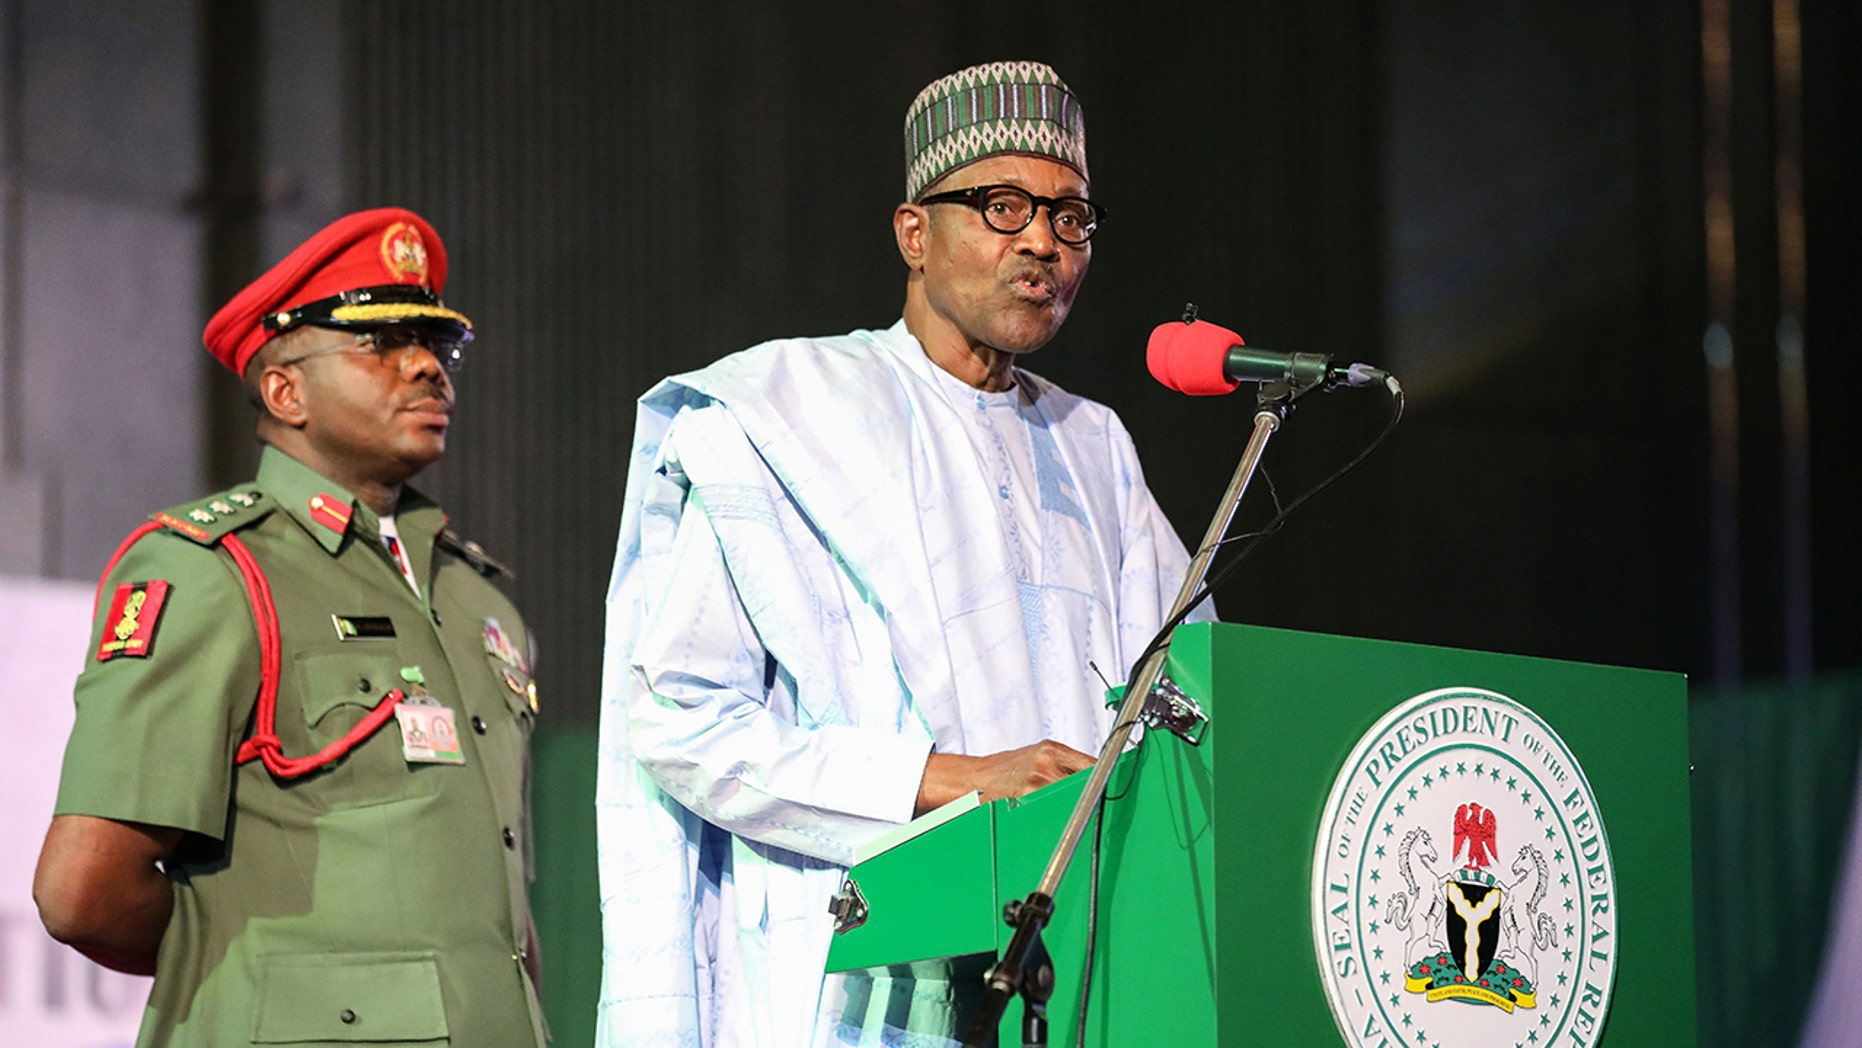 Nigerian President Muhammadu Buhari addresses the audience following his re-election, after Nigeria's Independent National Electoral Commission presented his certificate of election on February 27, 2019, in Abuja. (KOLA SULAIMON/AFP/Getty Images)